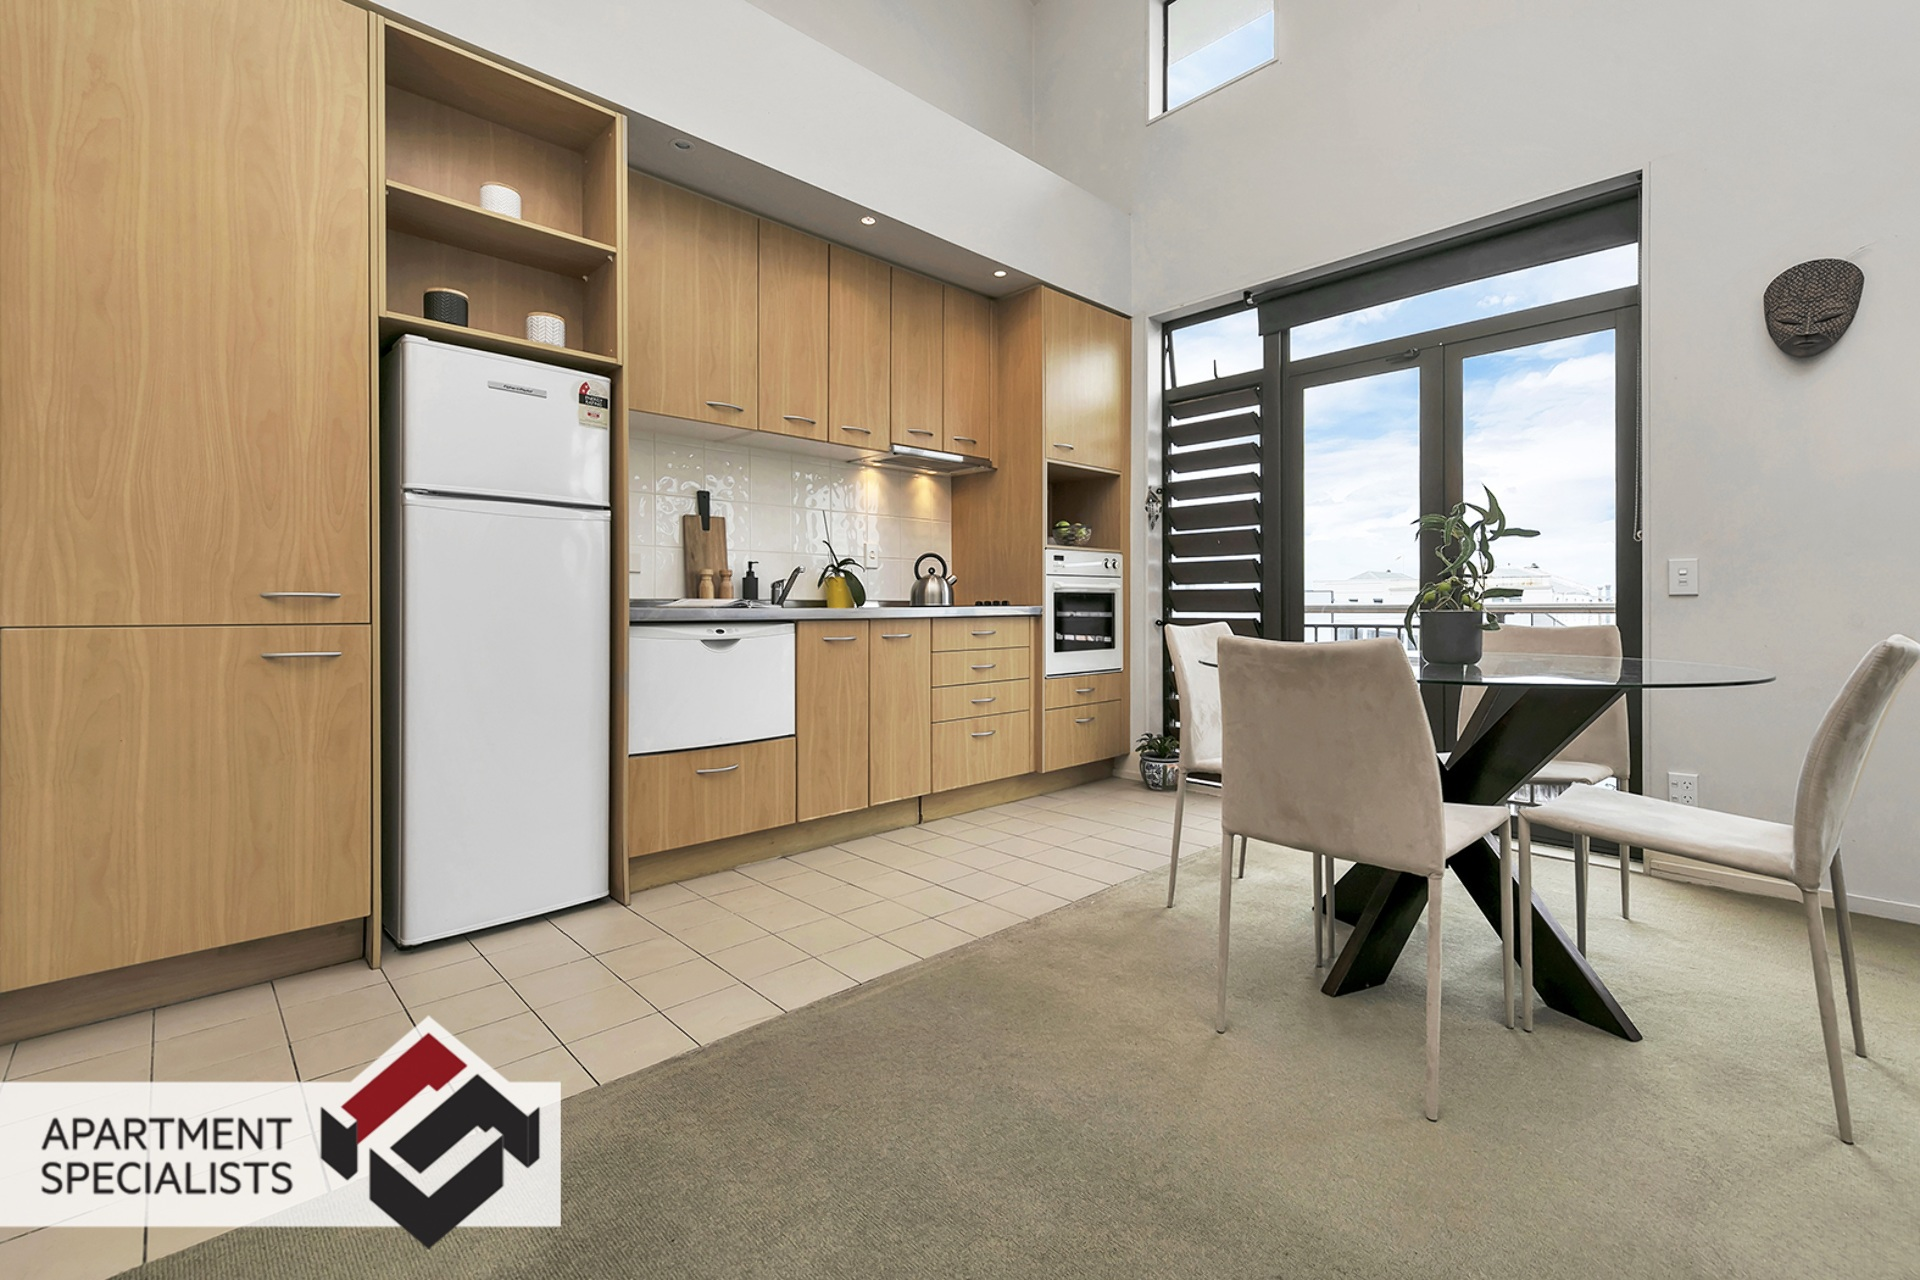 2 | 5 Charlotte Street, Eden Terrace | Apartment Specialists